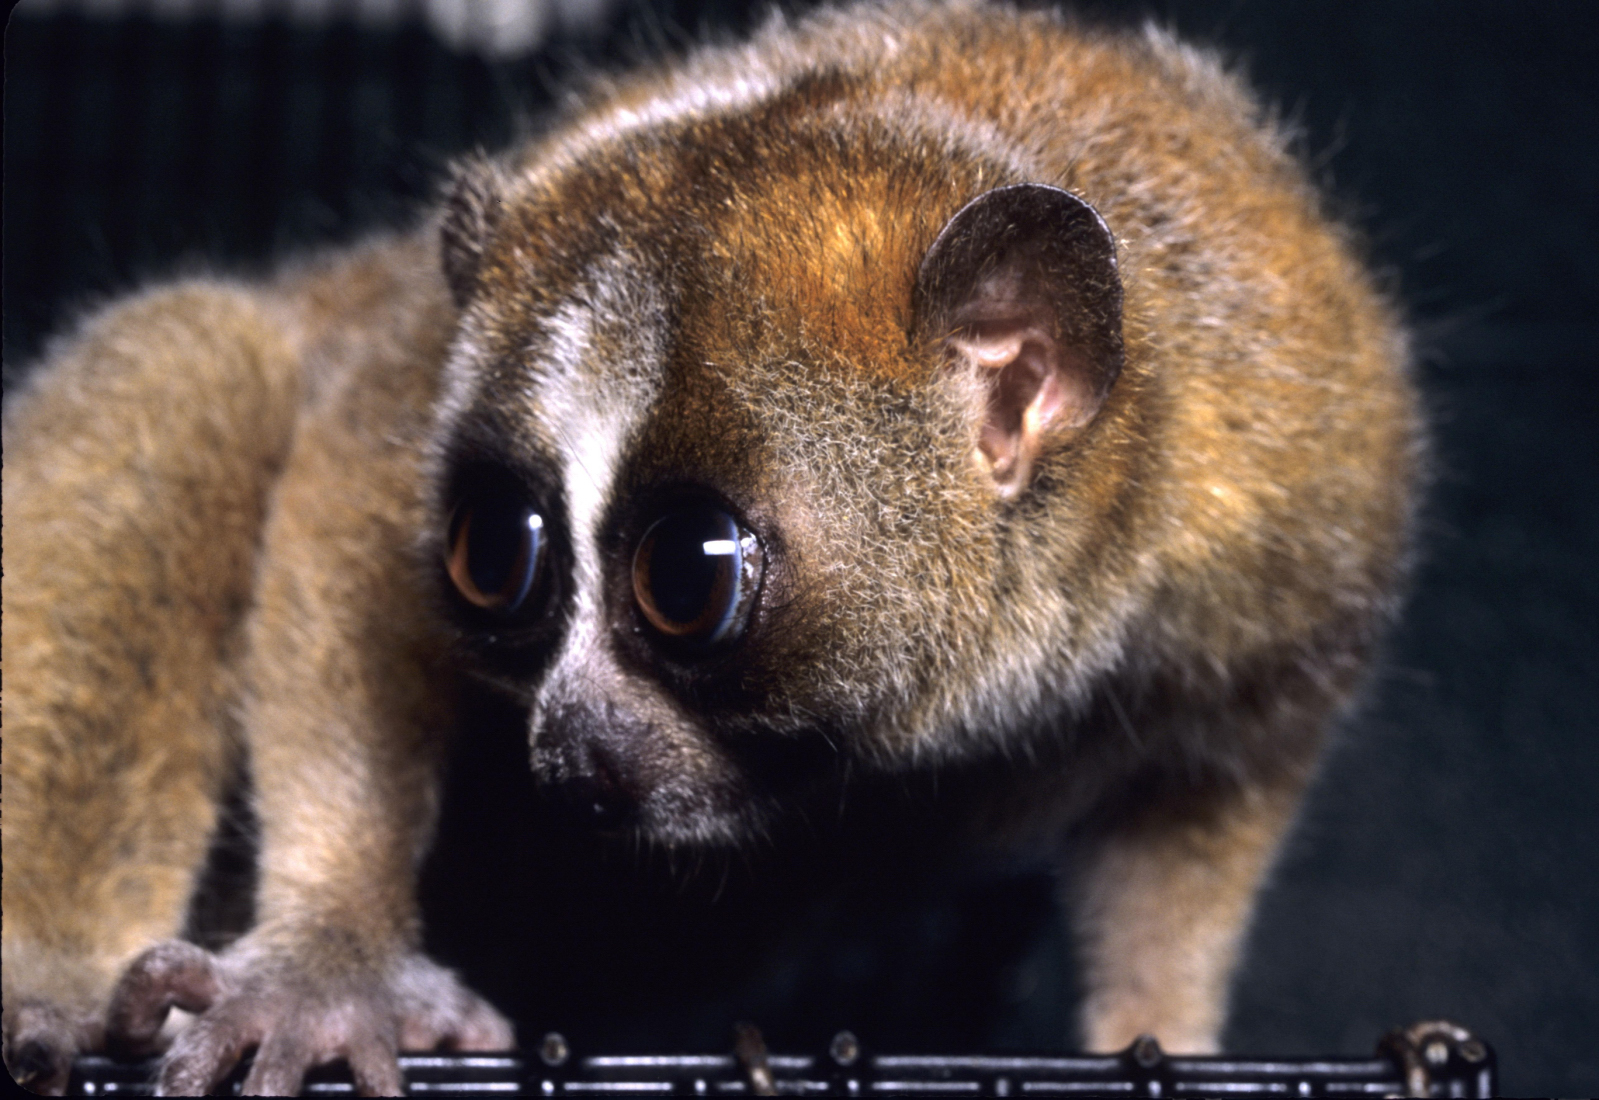 http://upload.wikimedia.org/wikipedia/commons/6/62/Nycticebus_pygmaeus_003.jpg